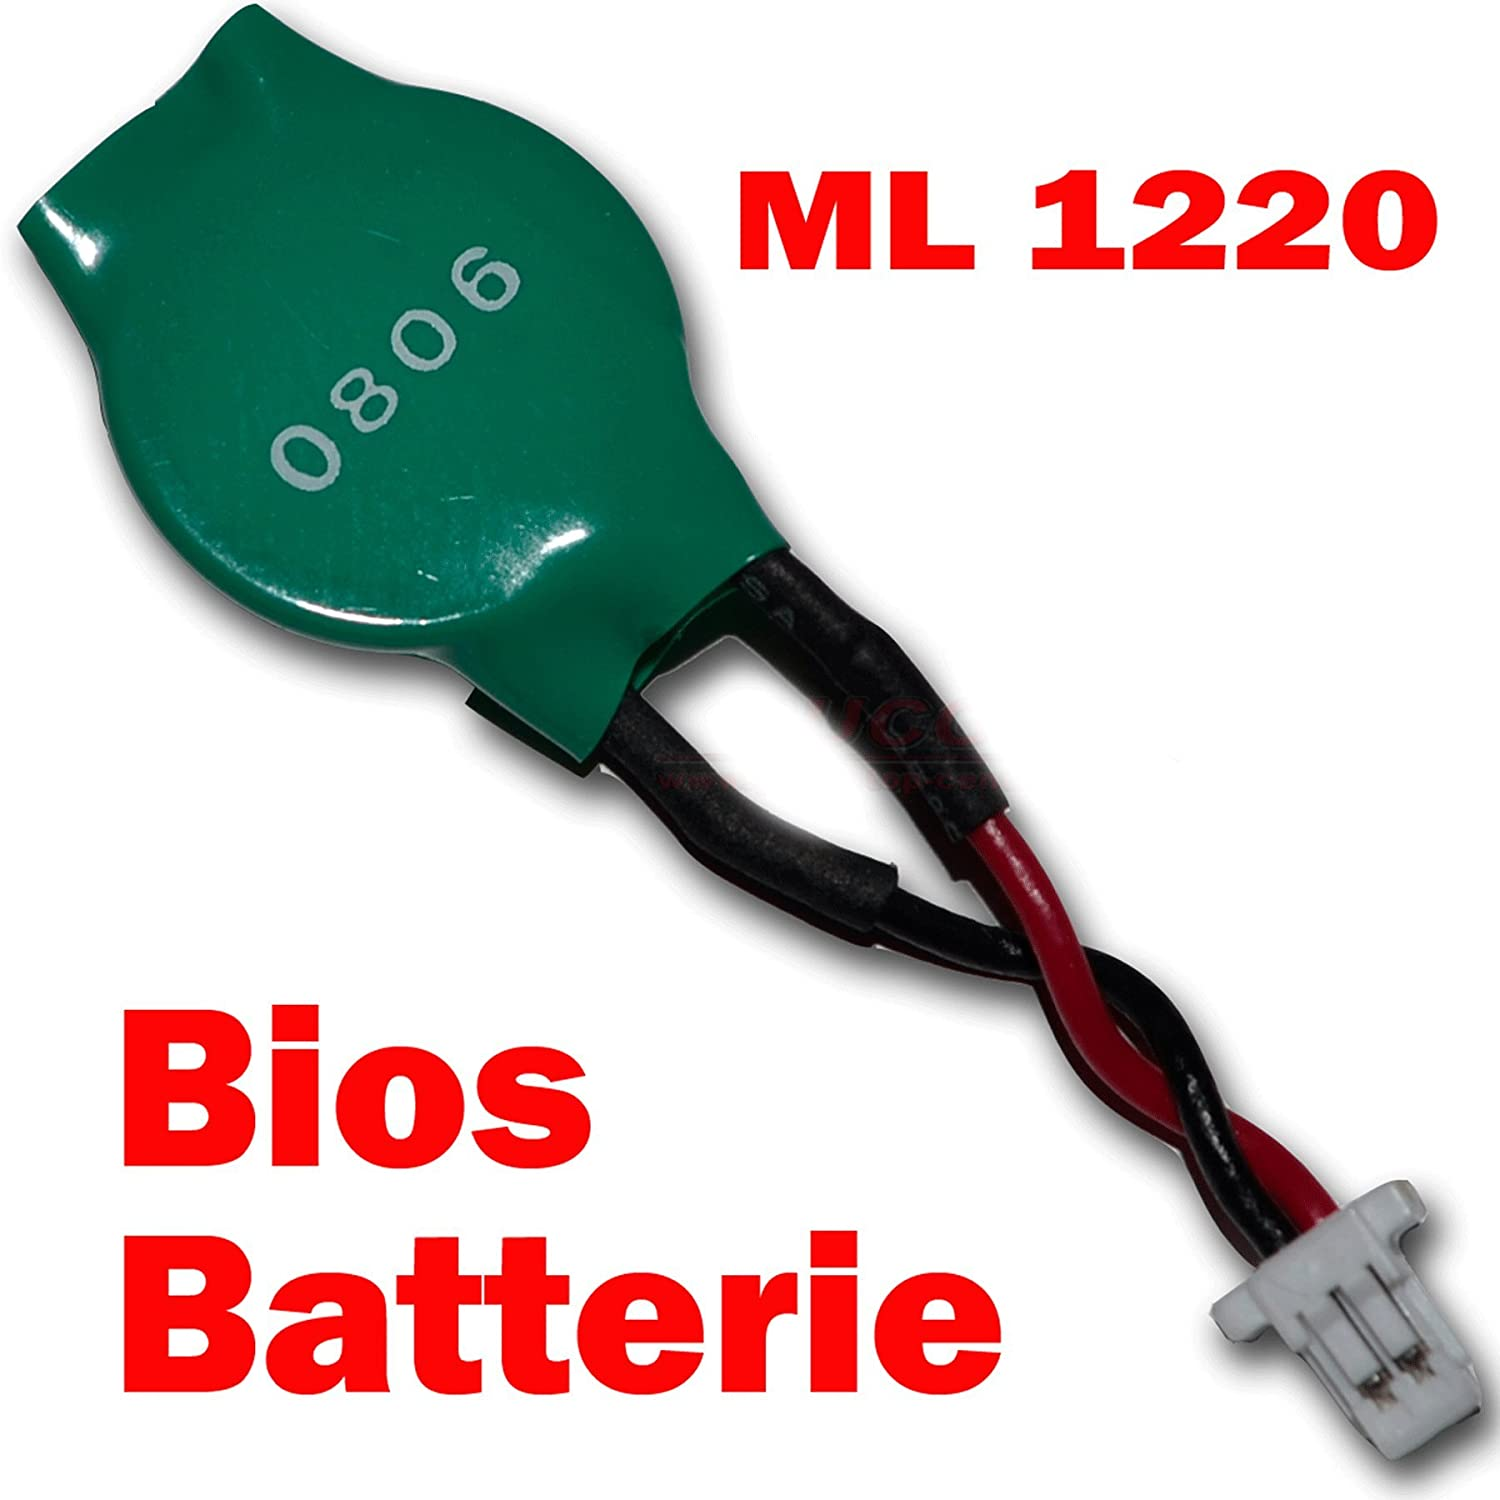 Bucom - ML1220 Battery BIOS Also for Asus EEE PC 1101HA